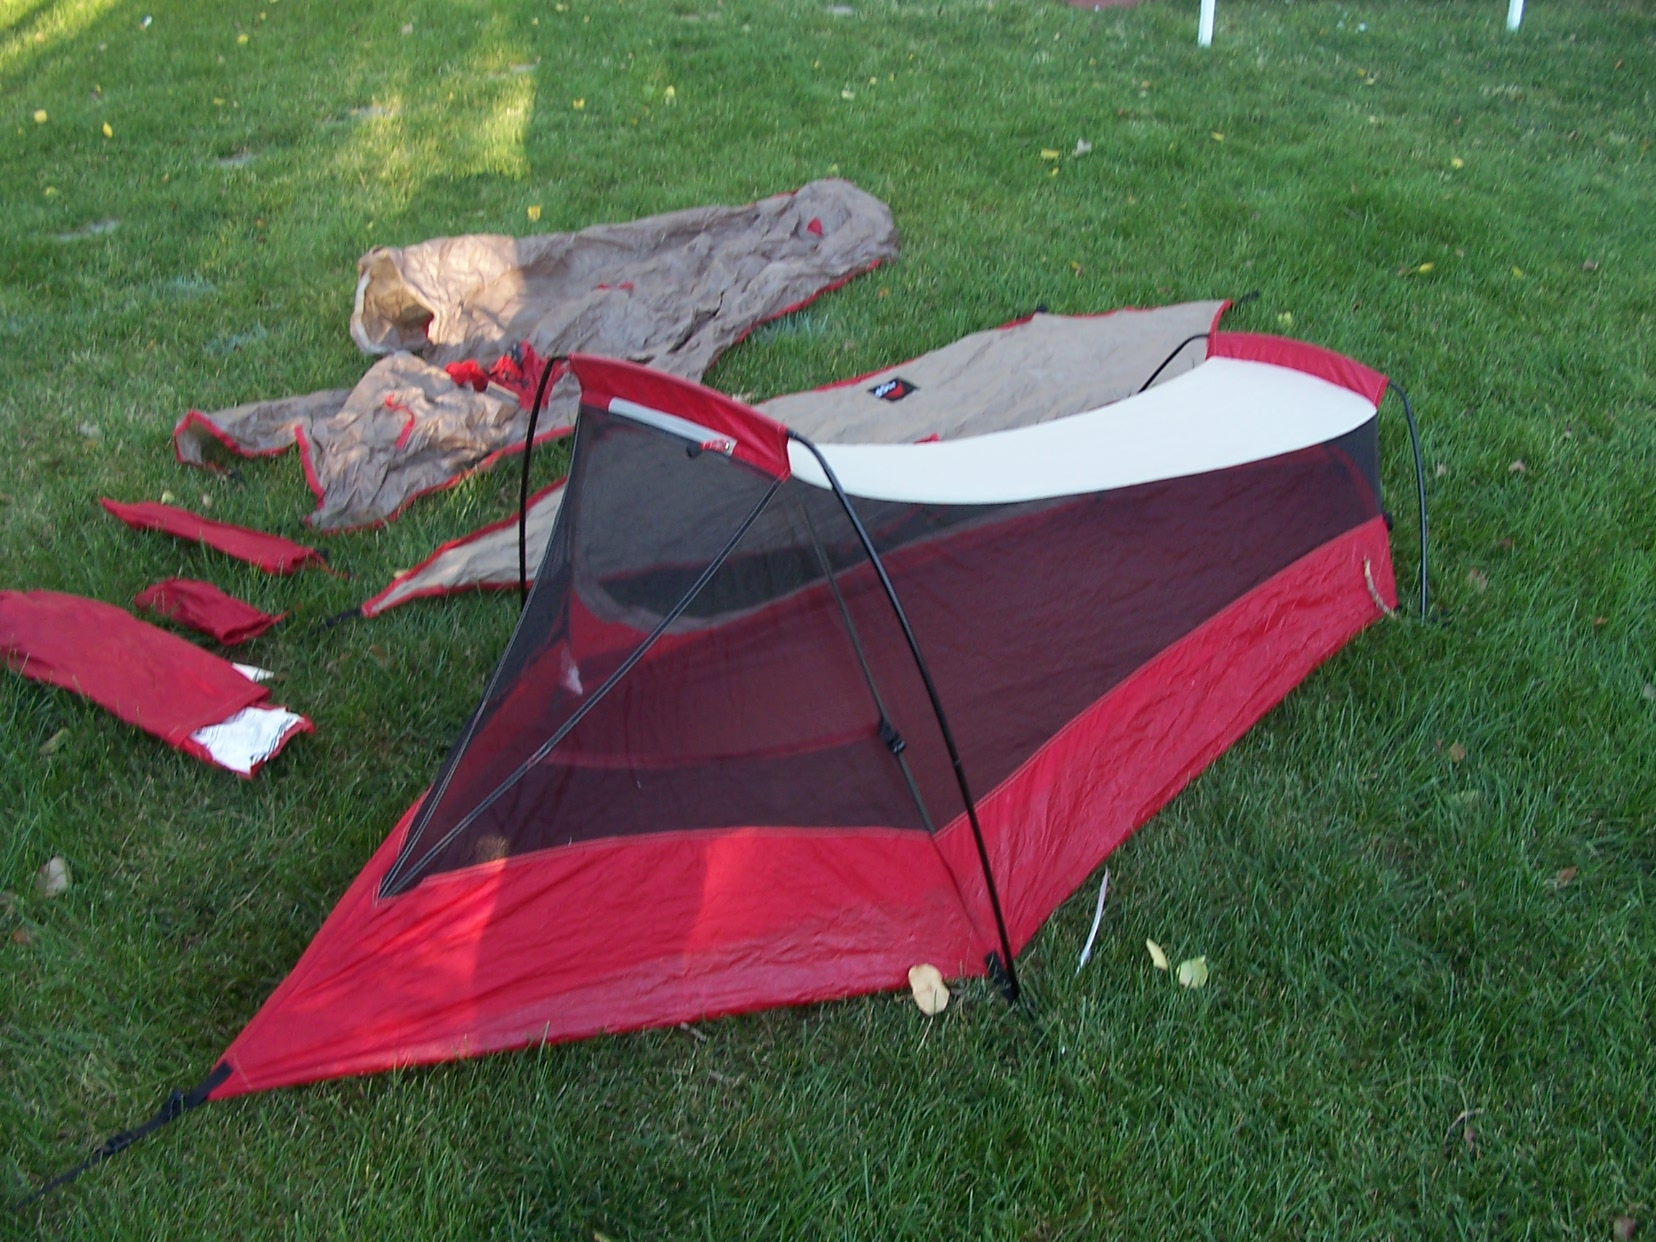 4241.thumb.jpg.962ce9eda76cd585f8e5b9afe532e8f1.jpg & MSR Microzoid tent - price reduced - The Yard Sale ...